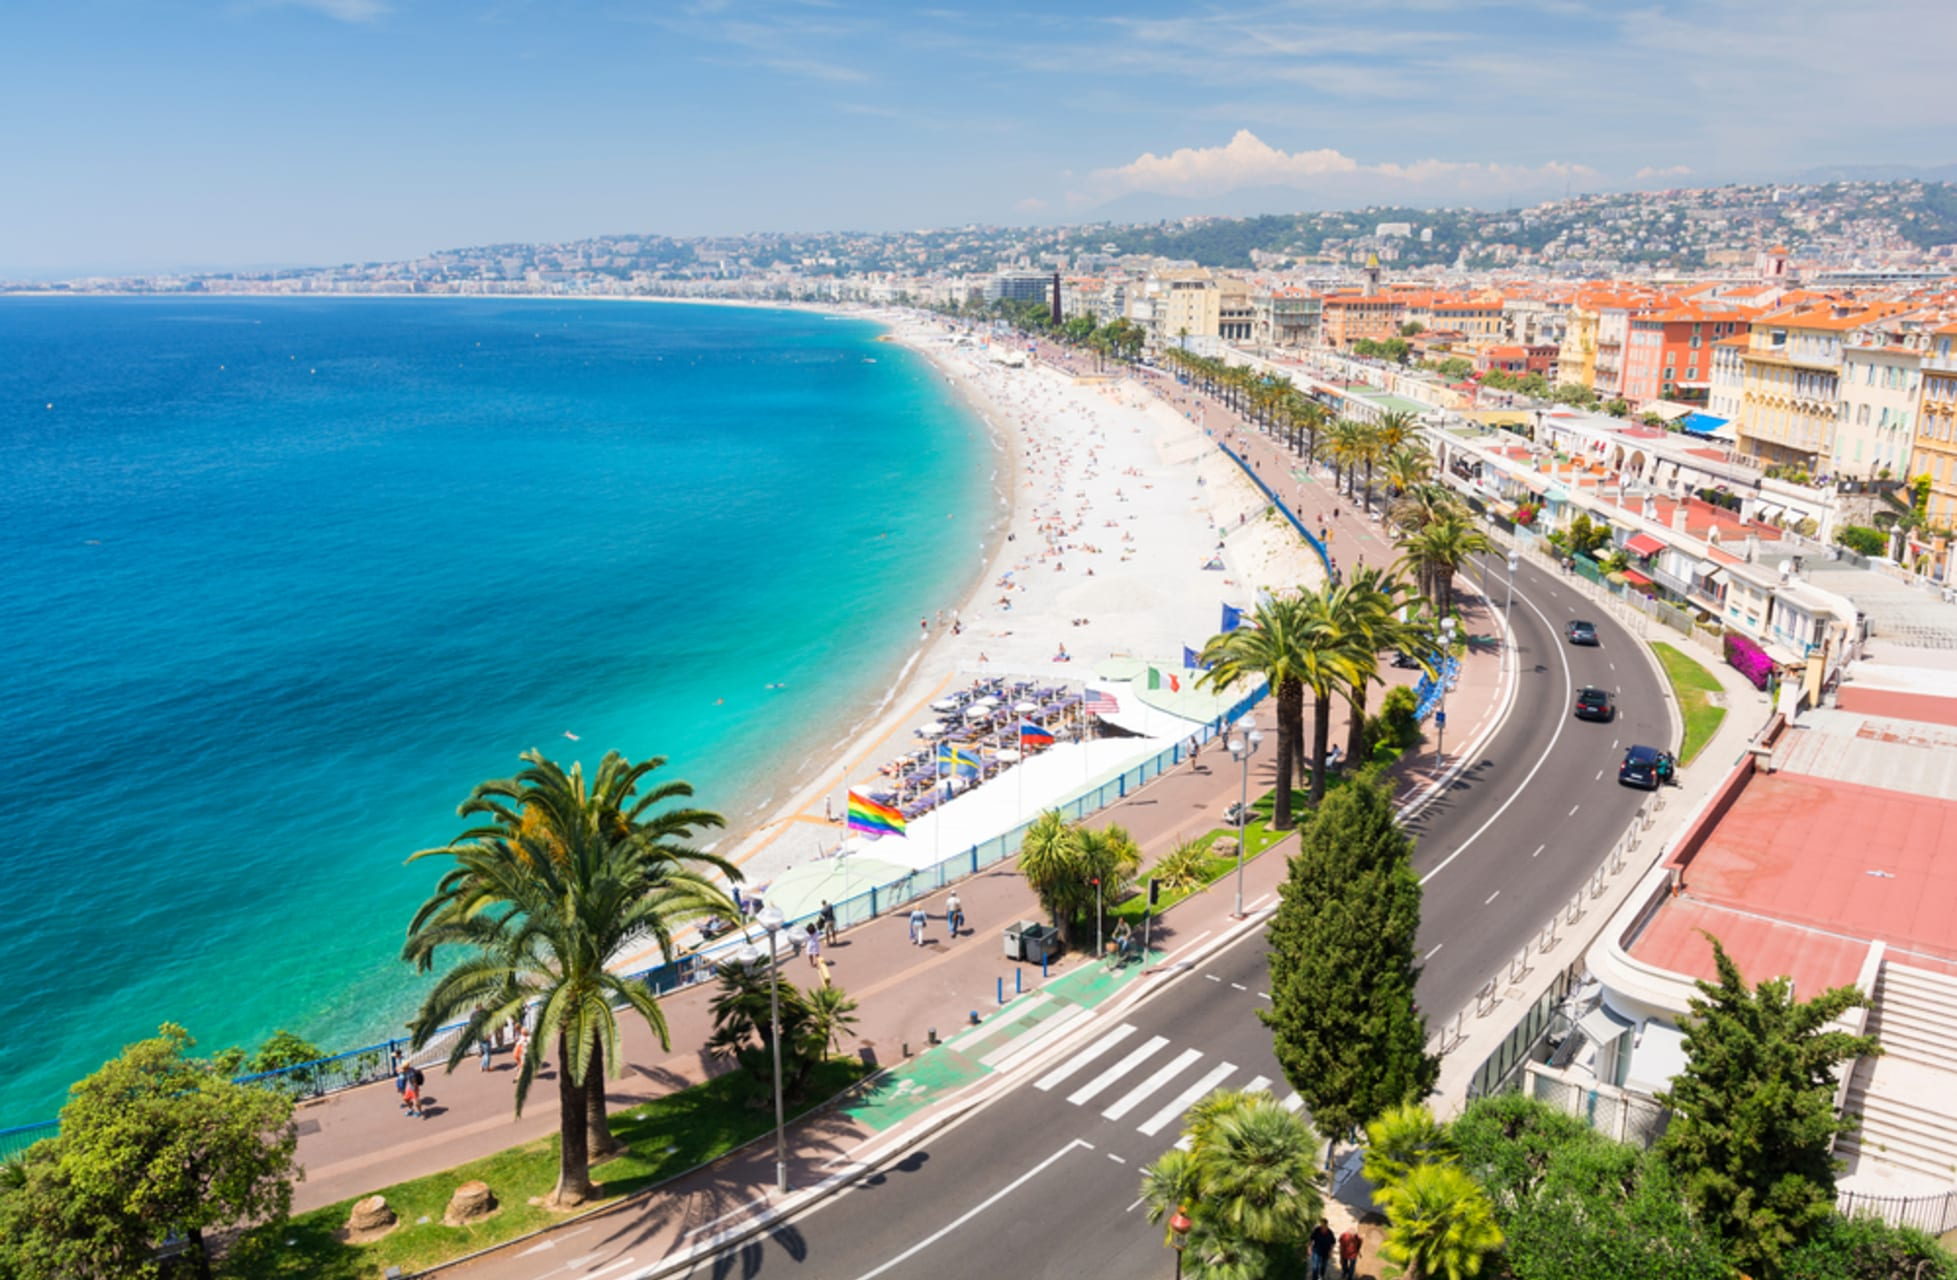 French Riviera - Nice: The Secrets of The Promenade Anglais